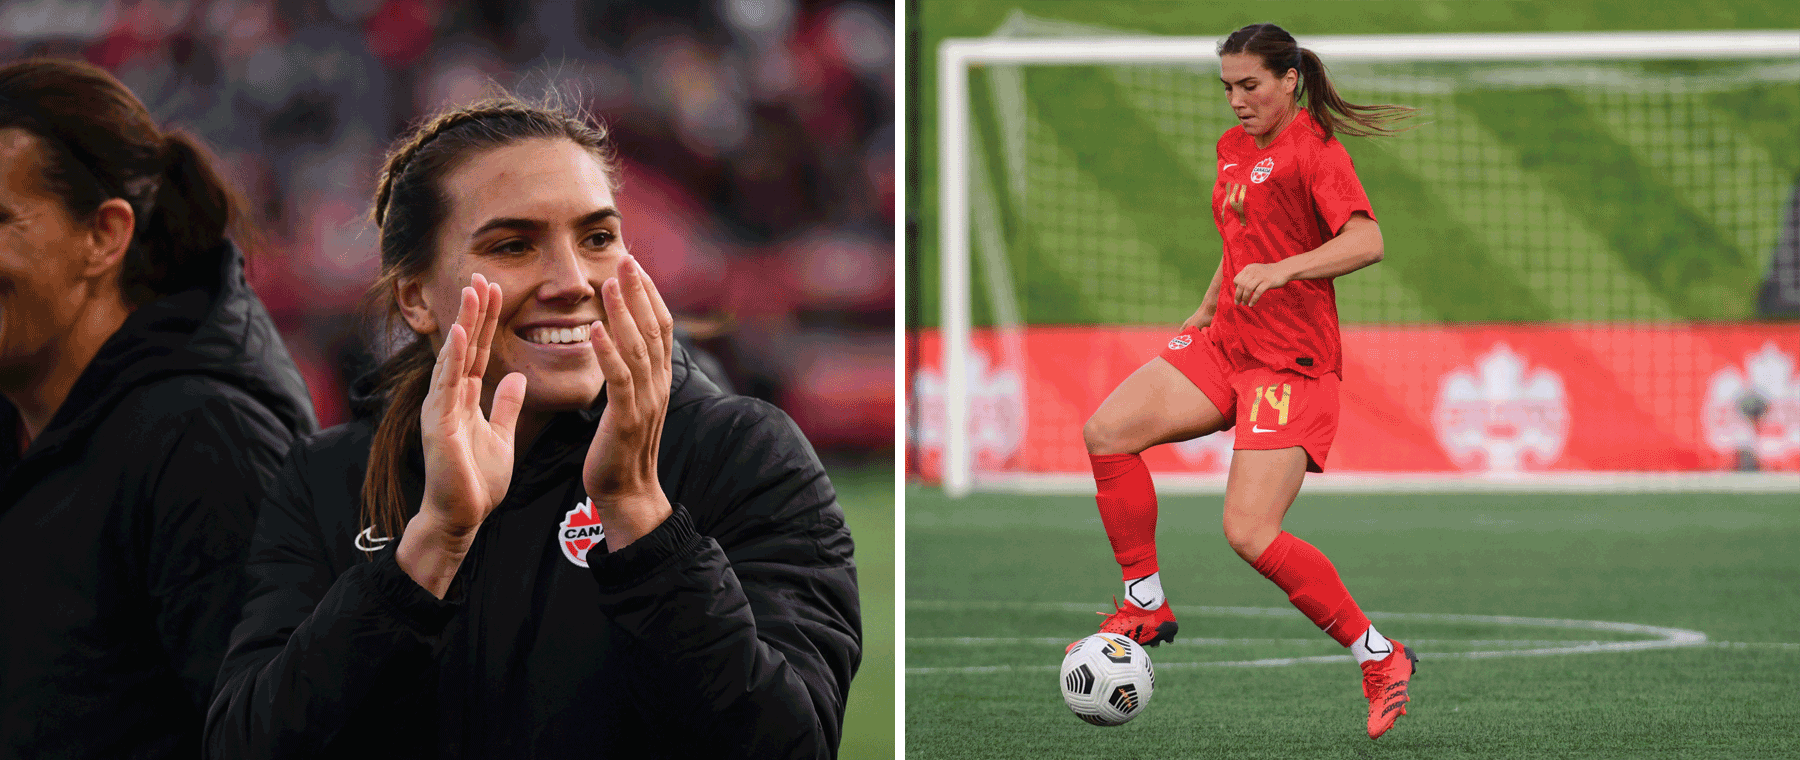 Welcome home Vanessa! Canadian women's soccer team bring their gold medal skills to Lansdowne